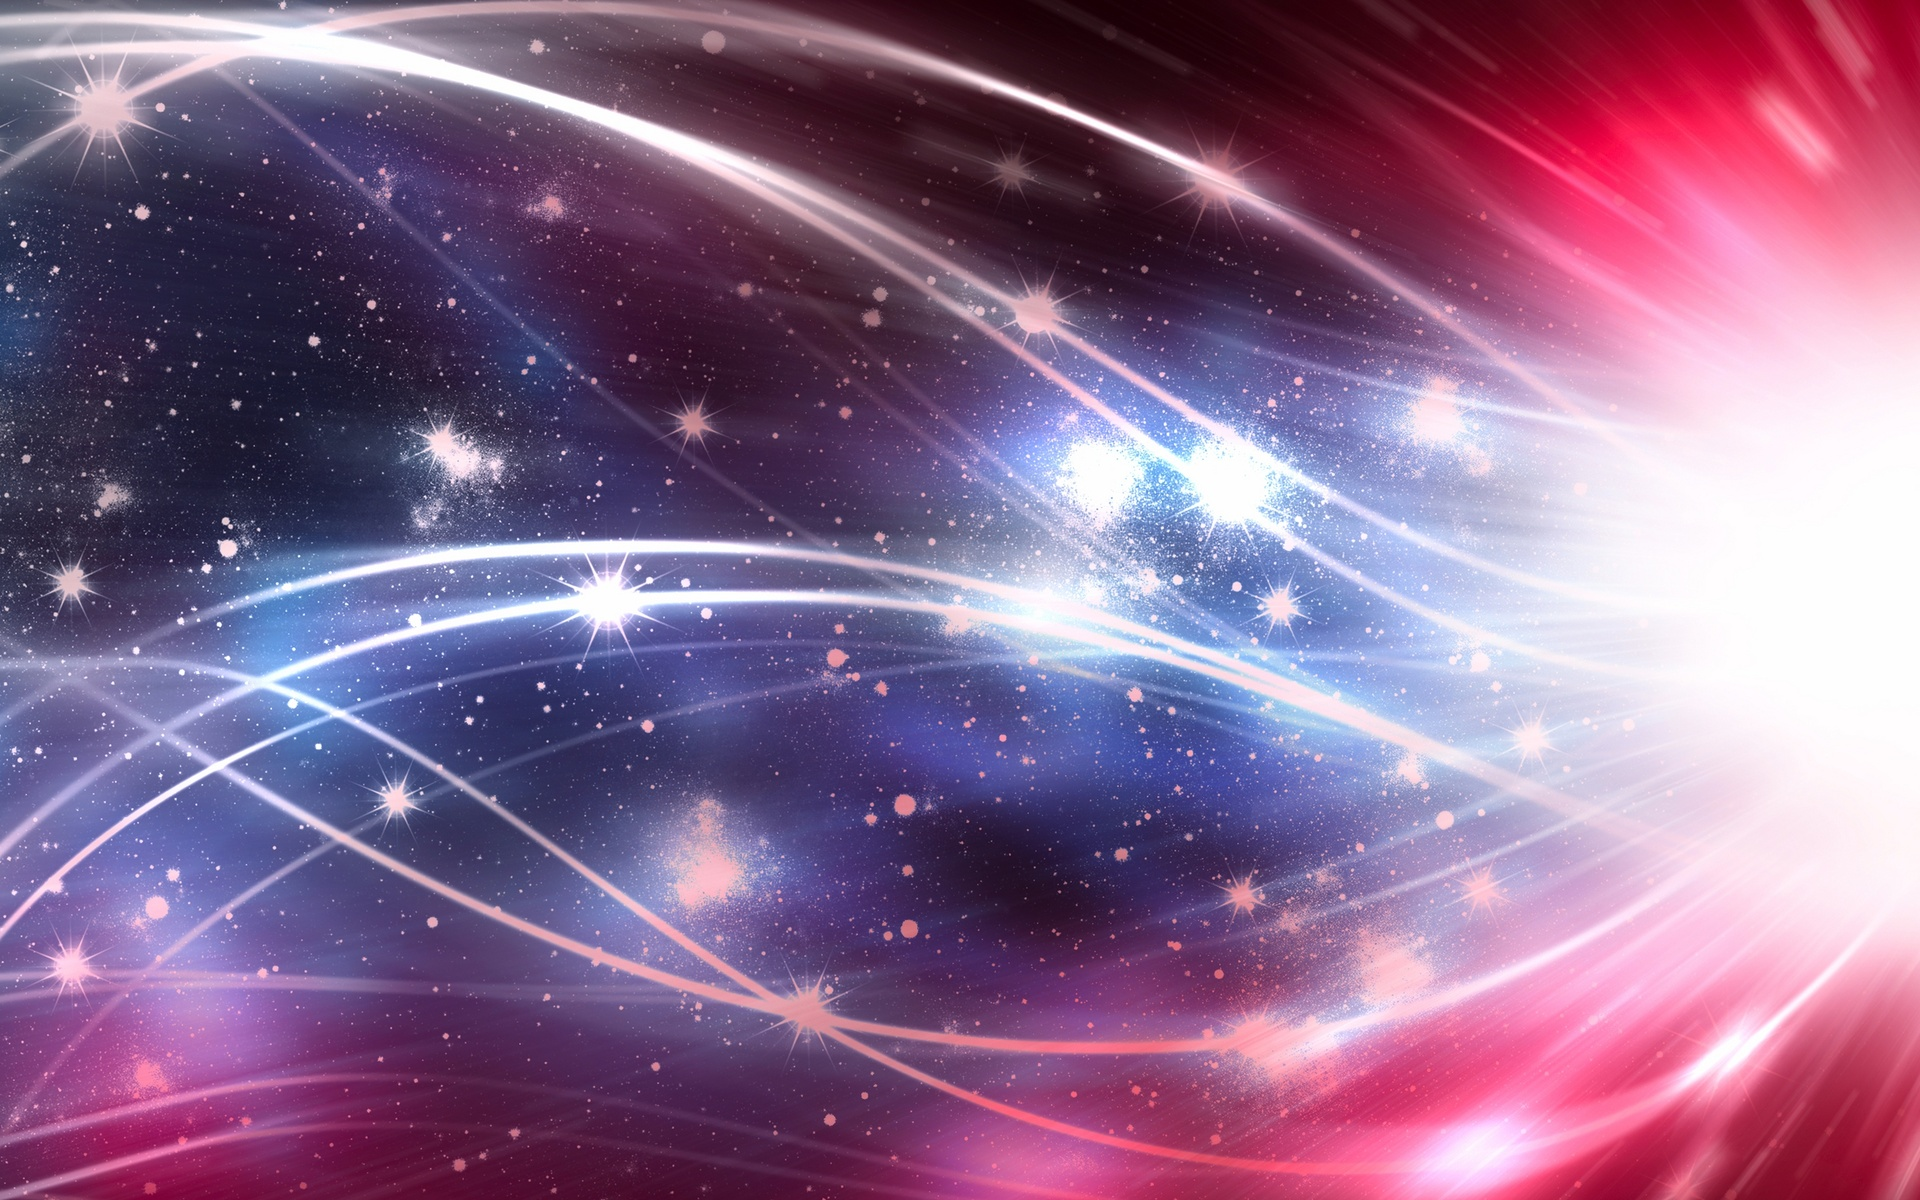 Wallpapers ID264528 & Light HD Wallpaper | Background Image | 1920x1200 | ID:264528 ...